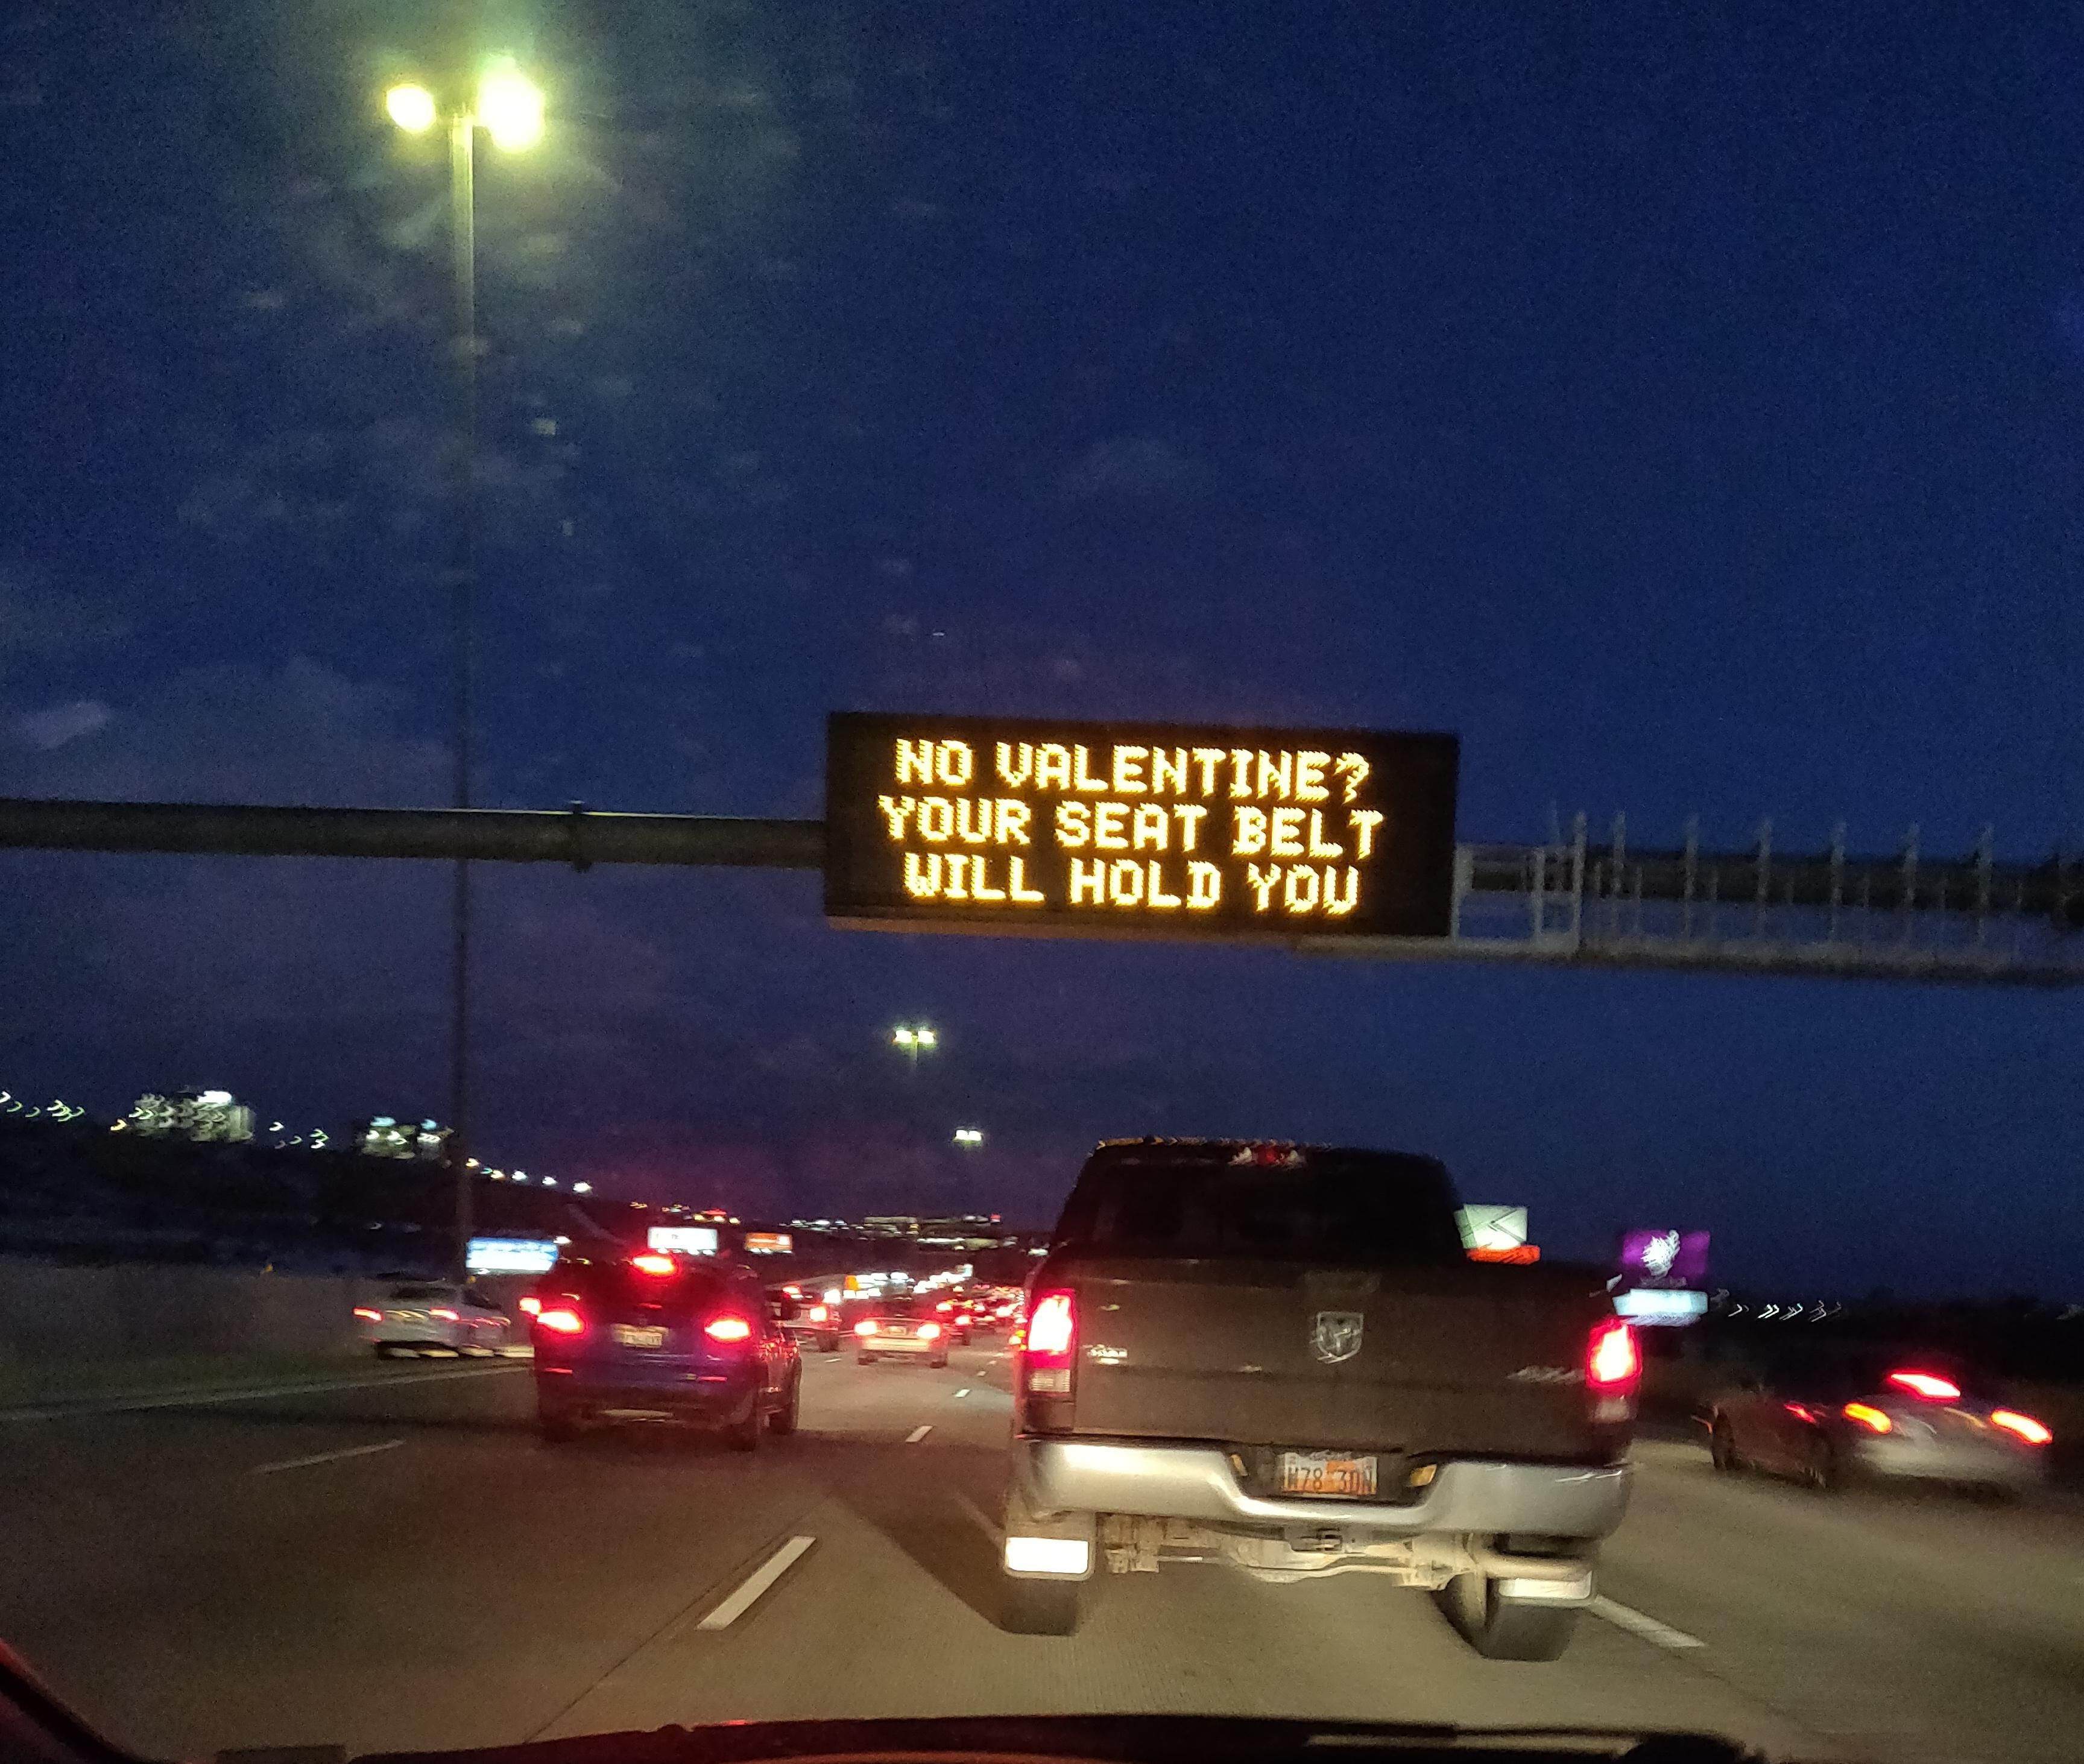 UDOT is at it again.